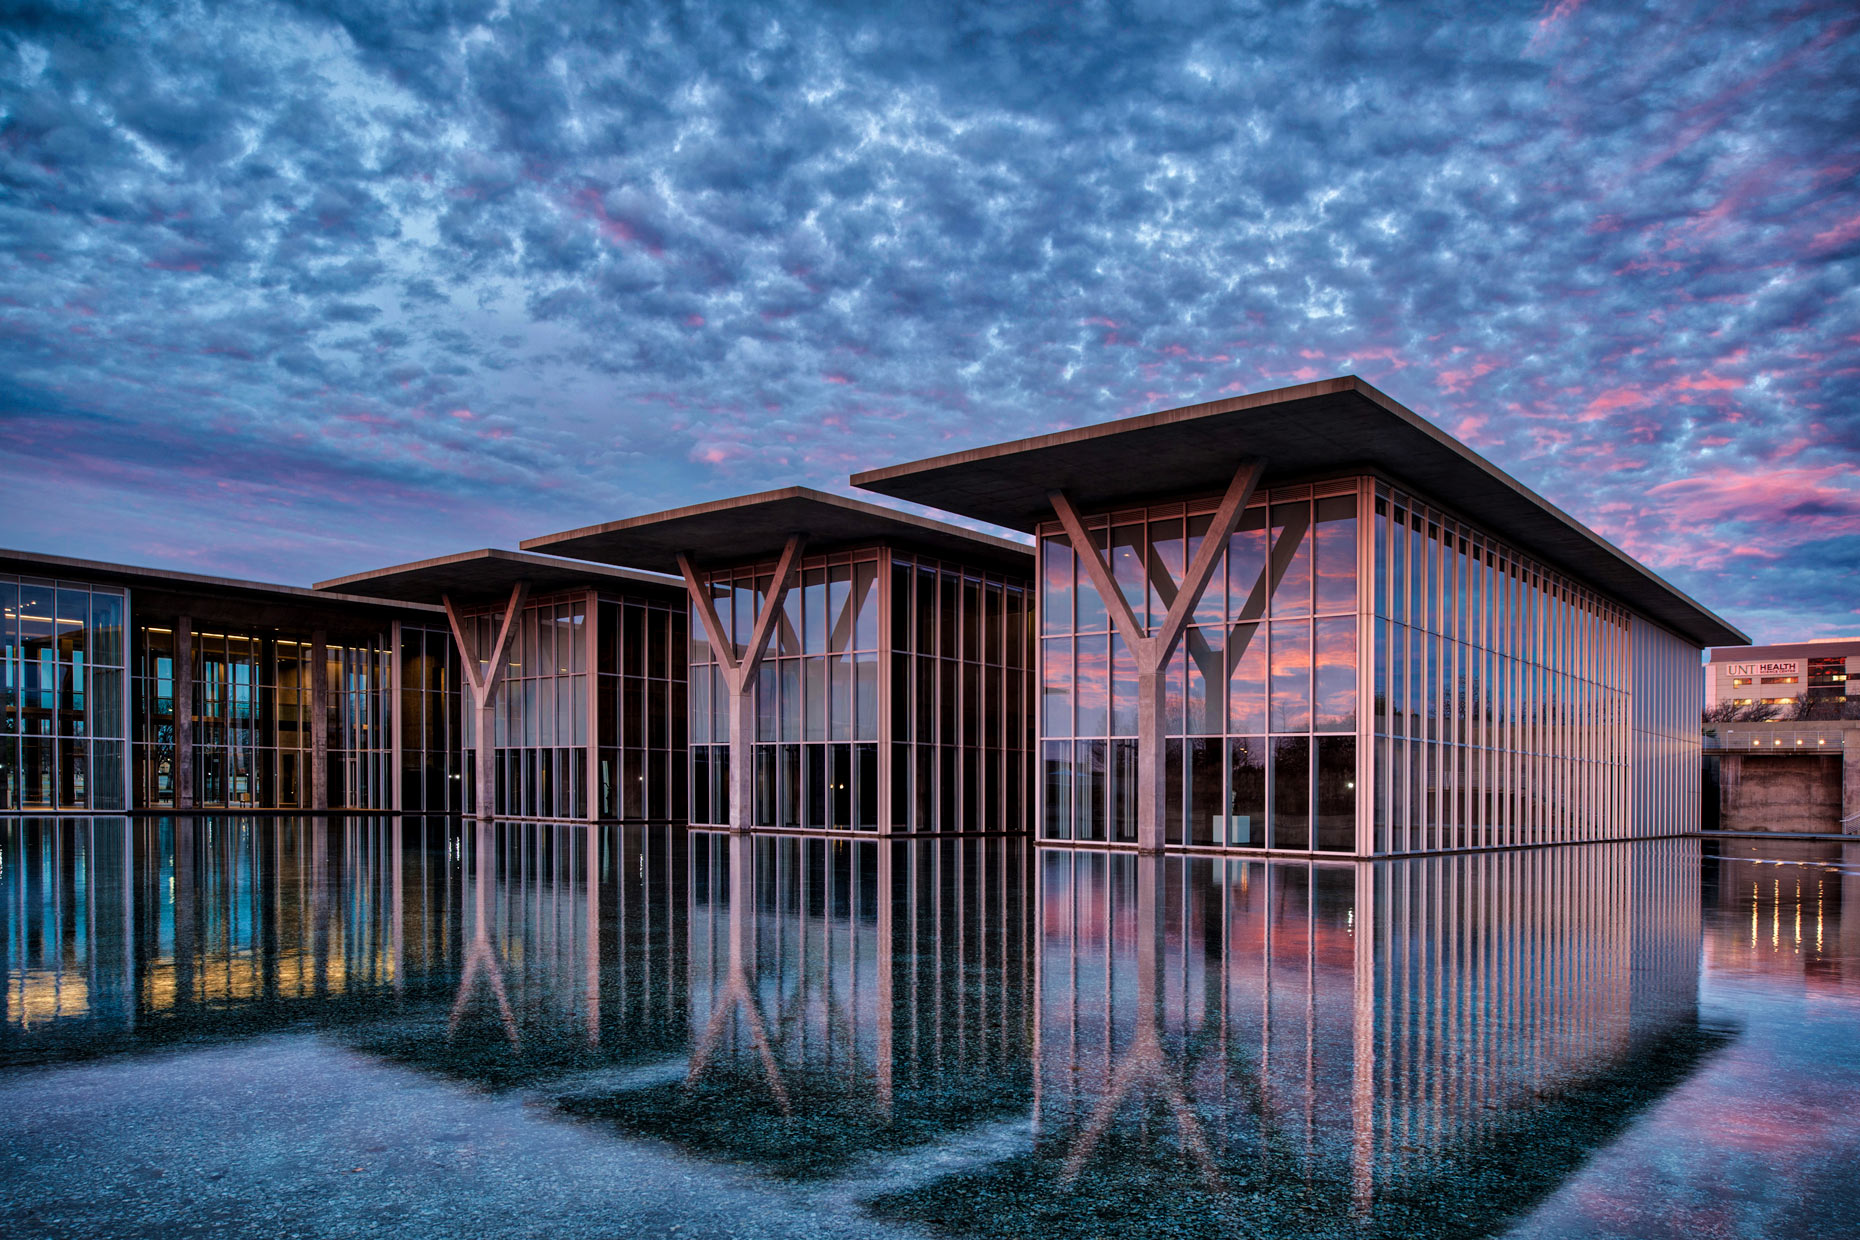 Fort Worth Modern Art Museum by architectural photographer Kevin Brown